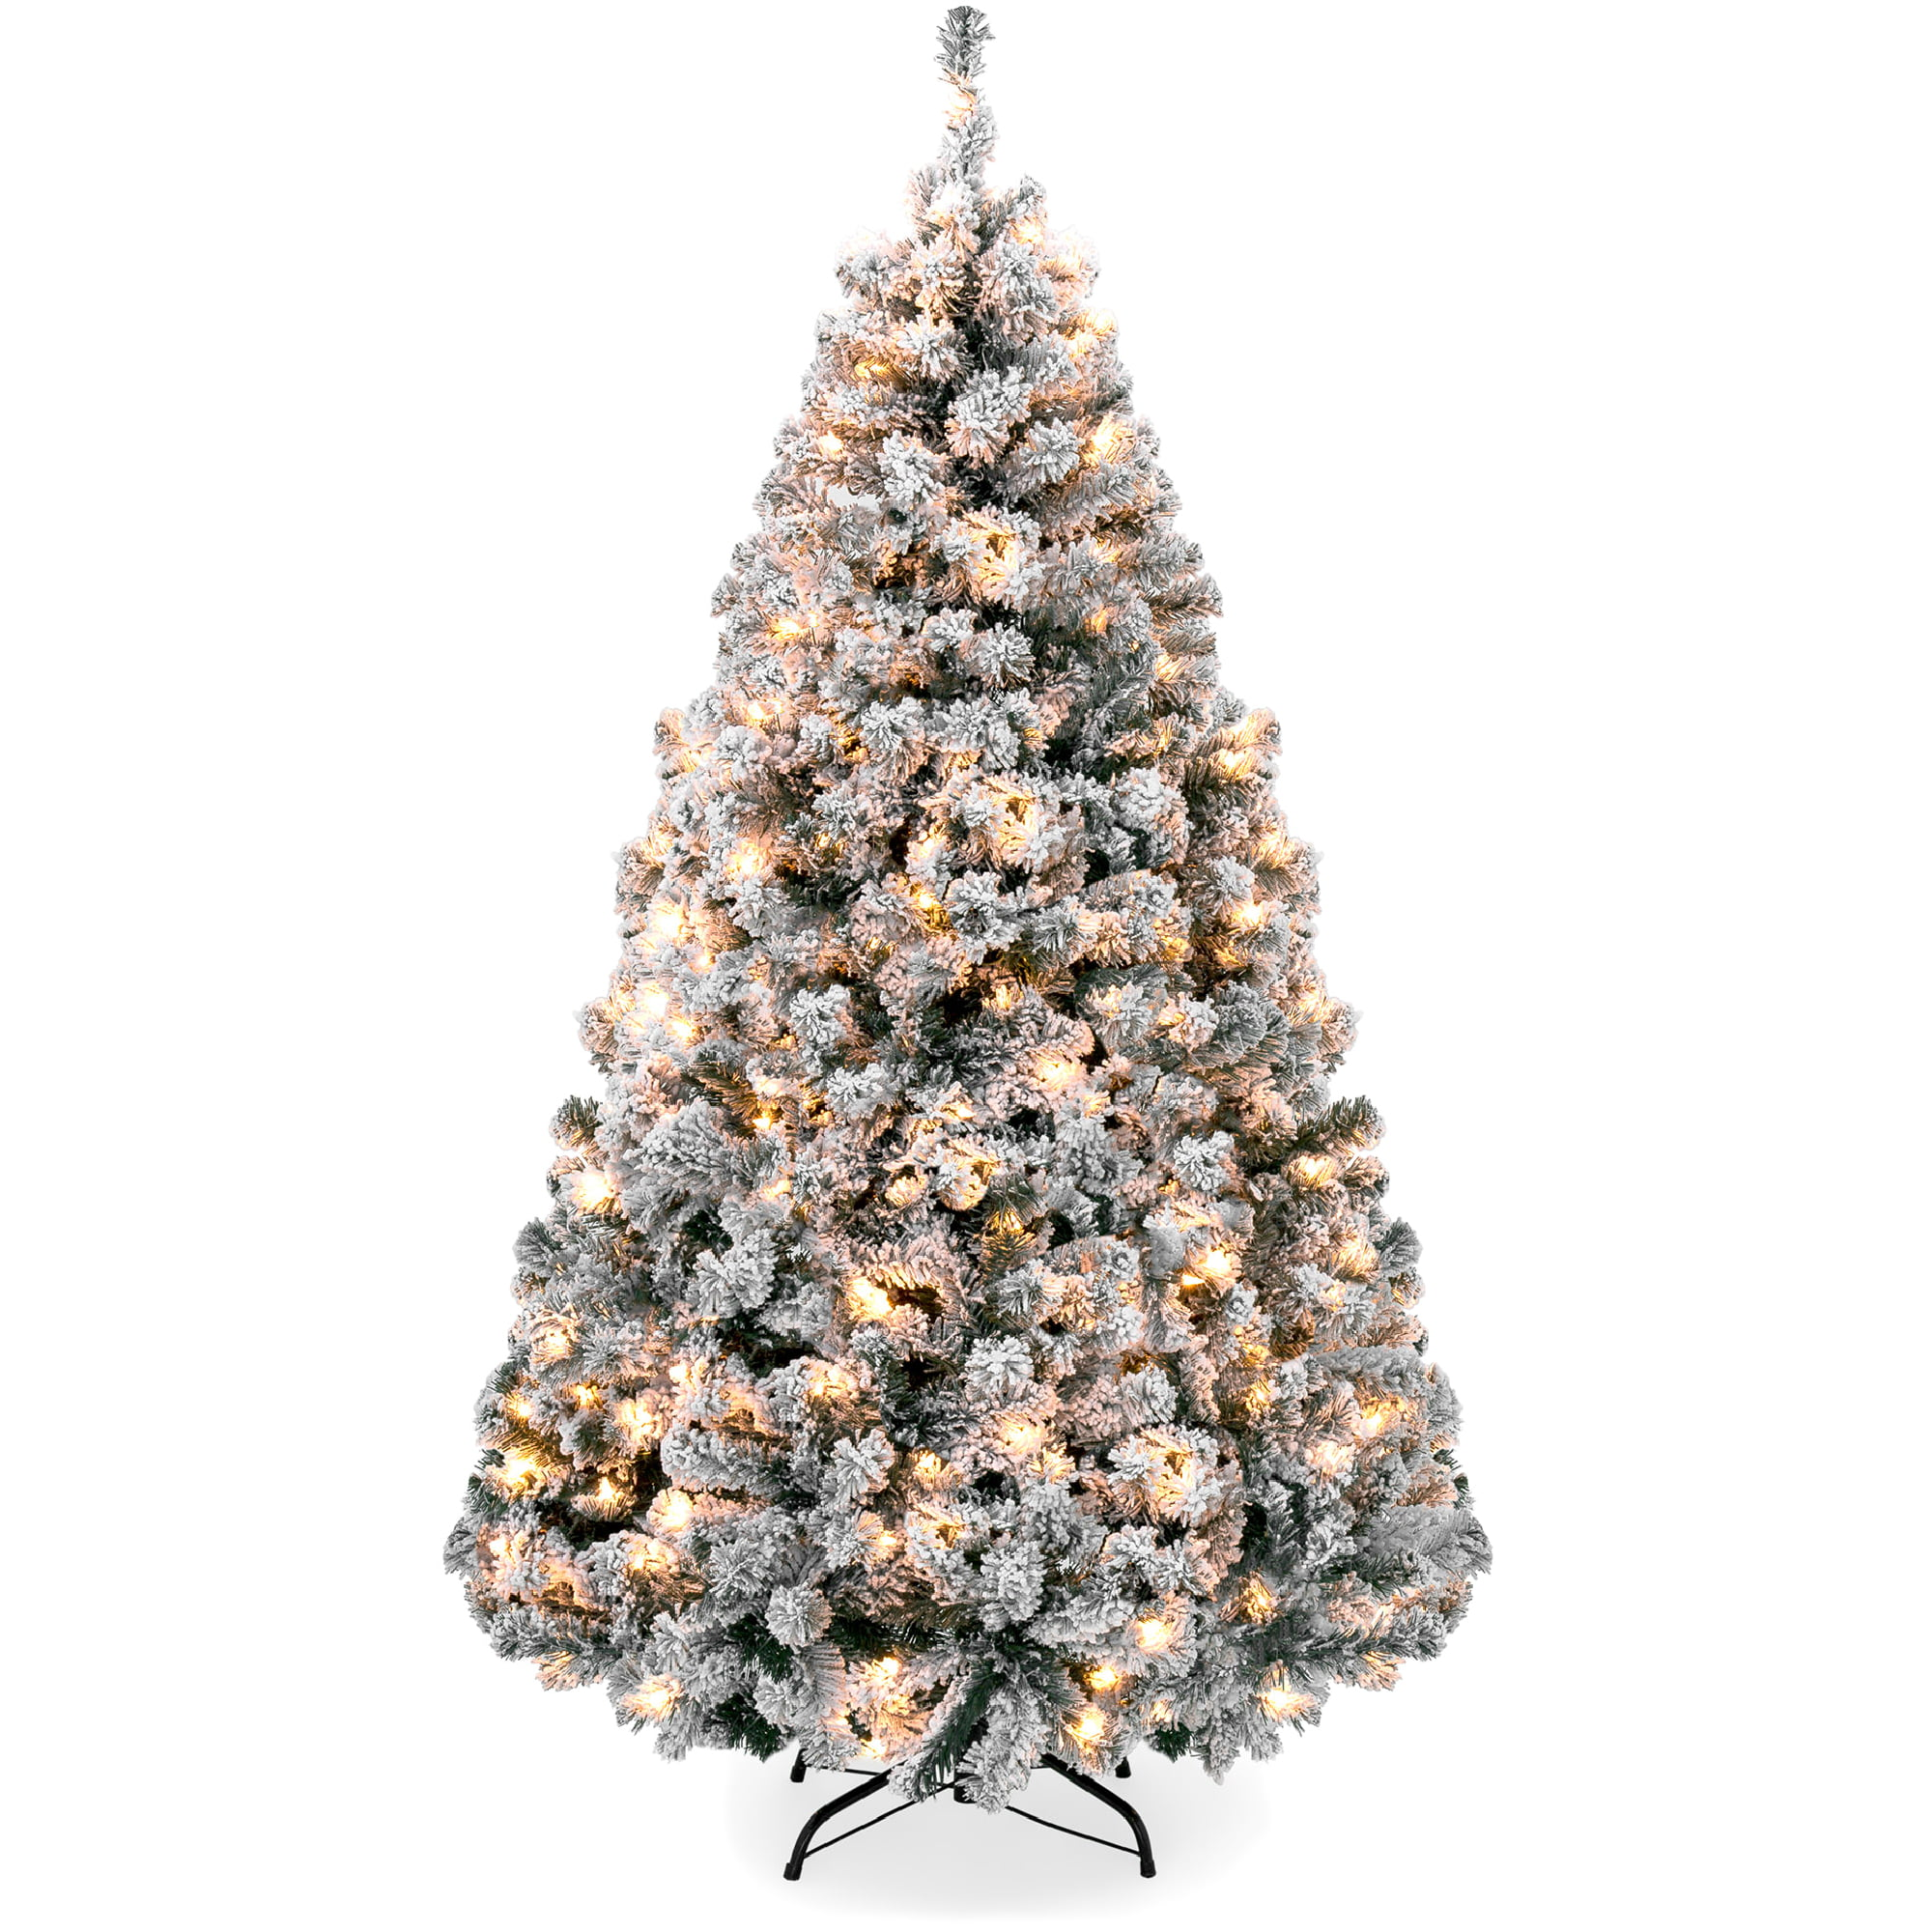 Best Choice Products 7 5ft Pre Lit Holiday Christmas Pine Tree W Snow Flocked Branches 550 Warm White Lights Walmart Com Walmart Com